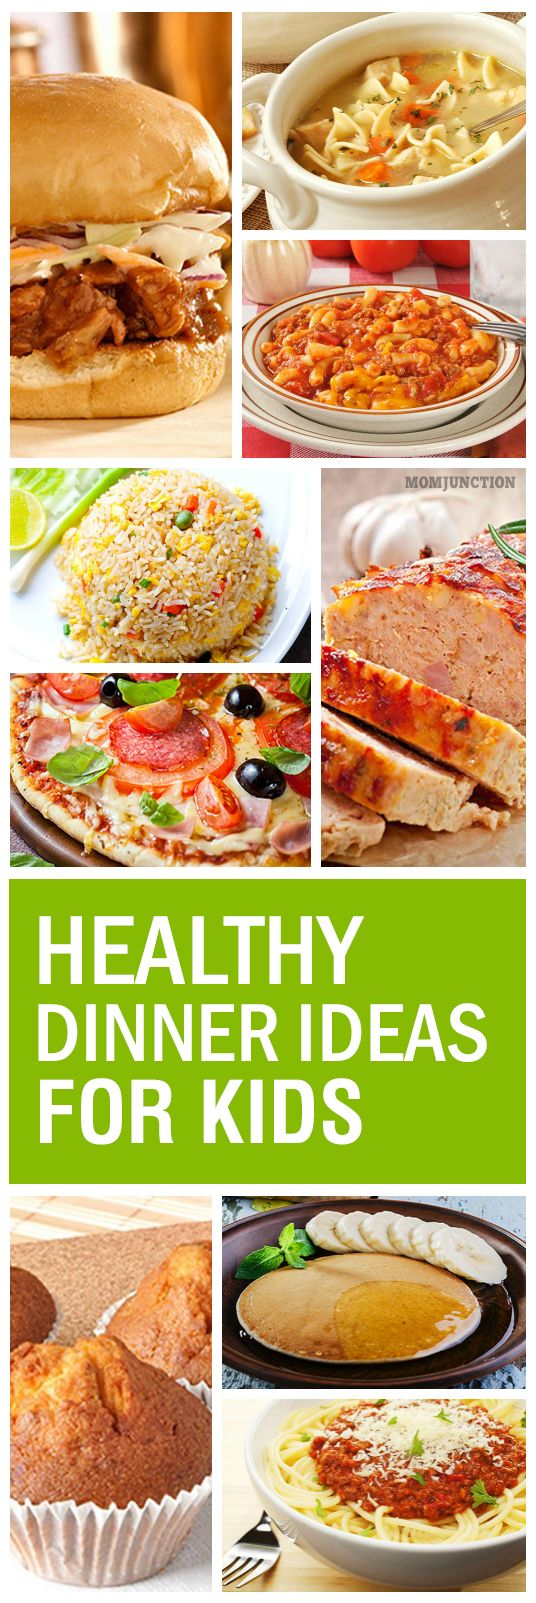 Dinner Recipes for Kids: Here is a guide to healthy dinner recipes that your kid will surely enjoy. We have shared some easy and quick dinner recipe ideas, which you can prepare on a special evening or during the weekends.